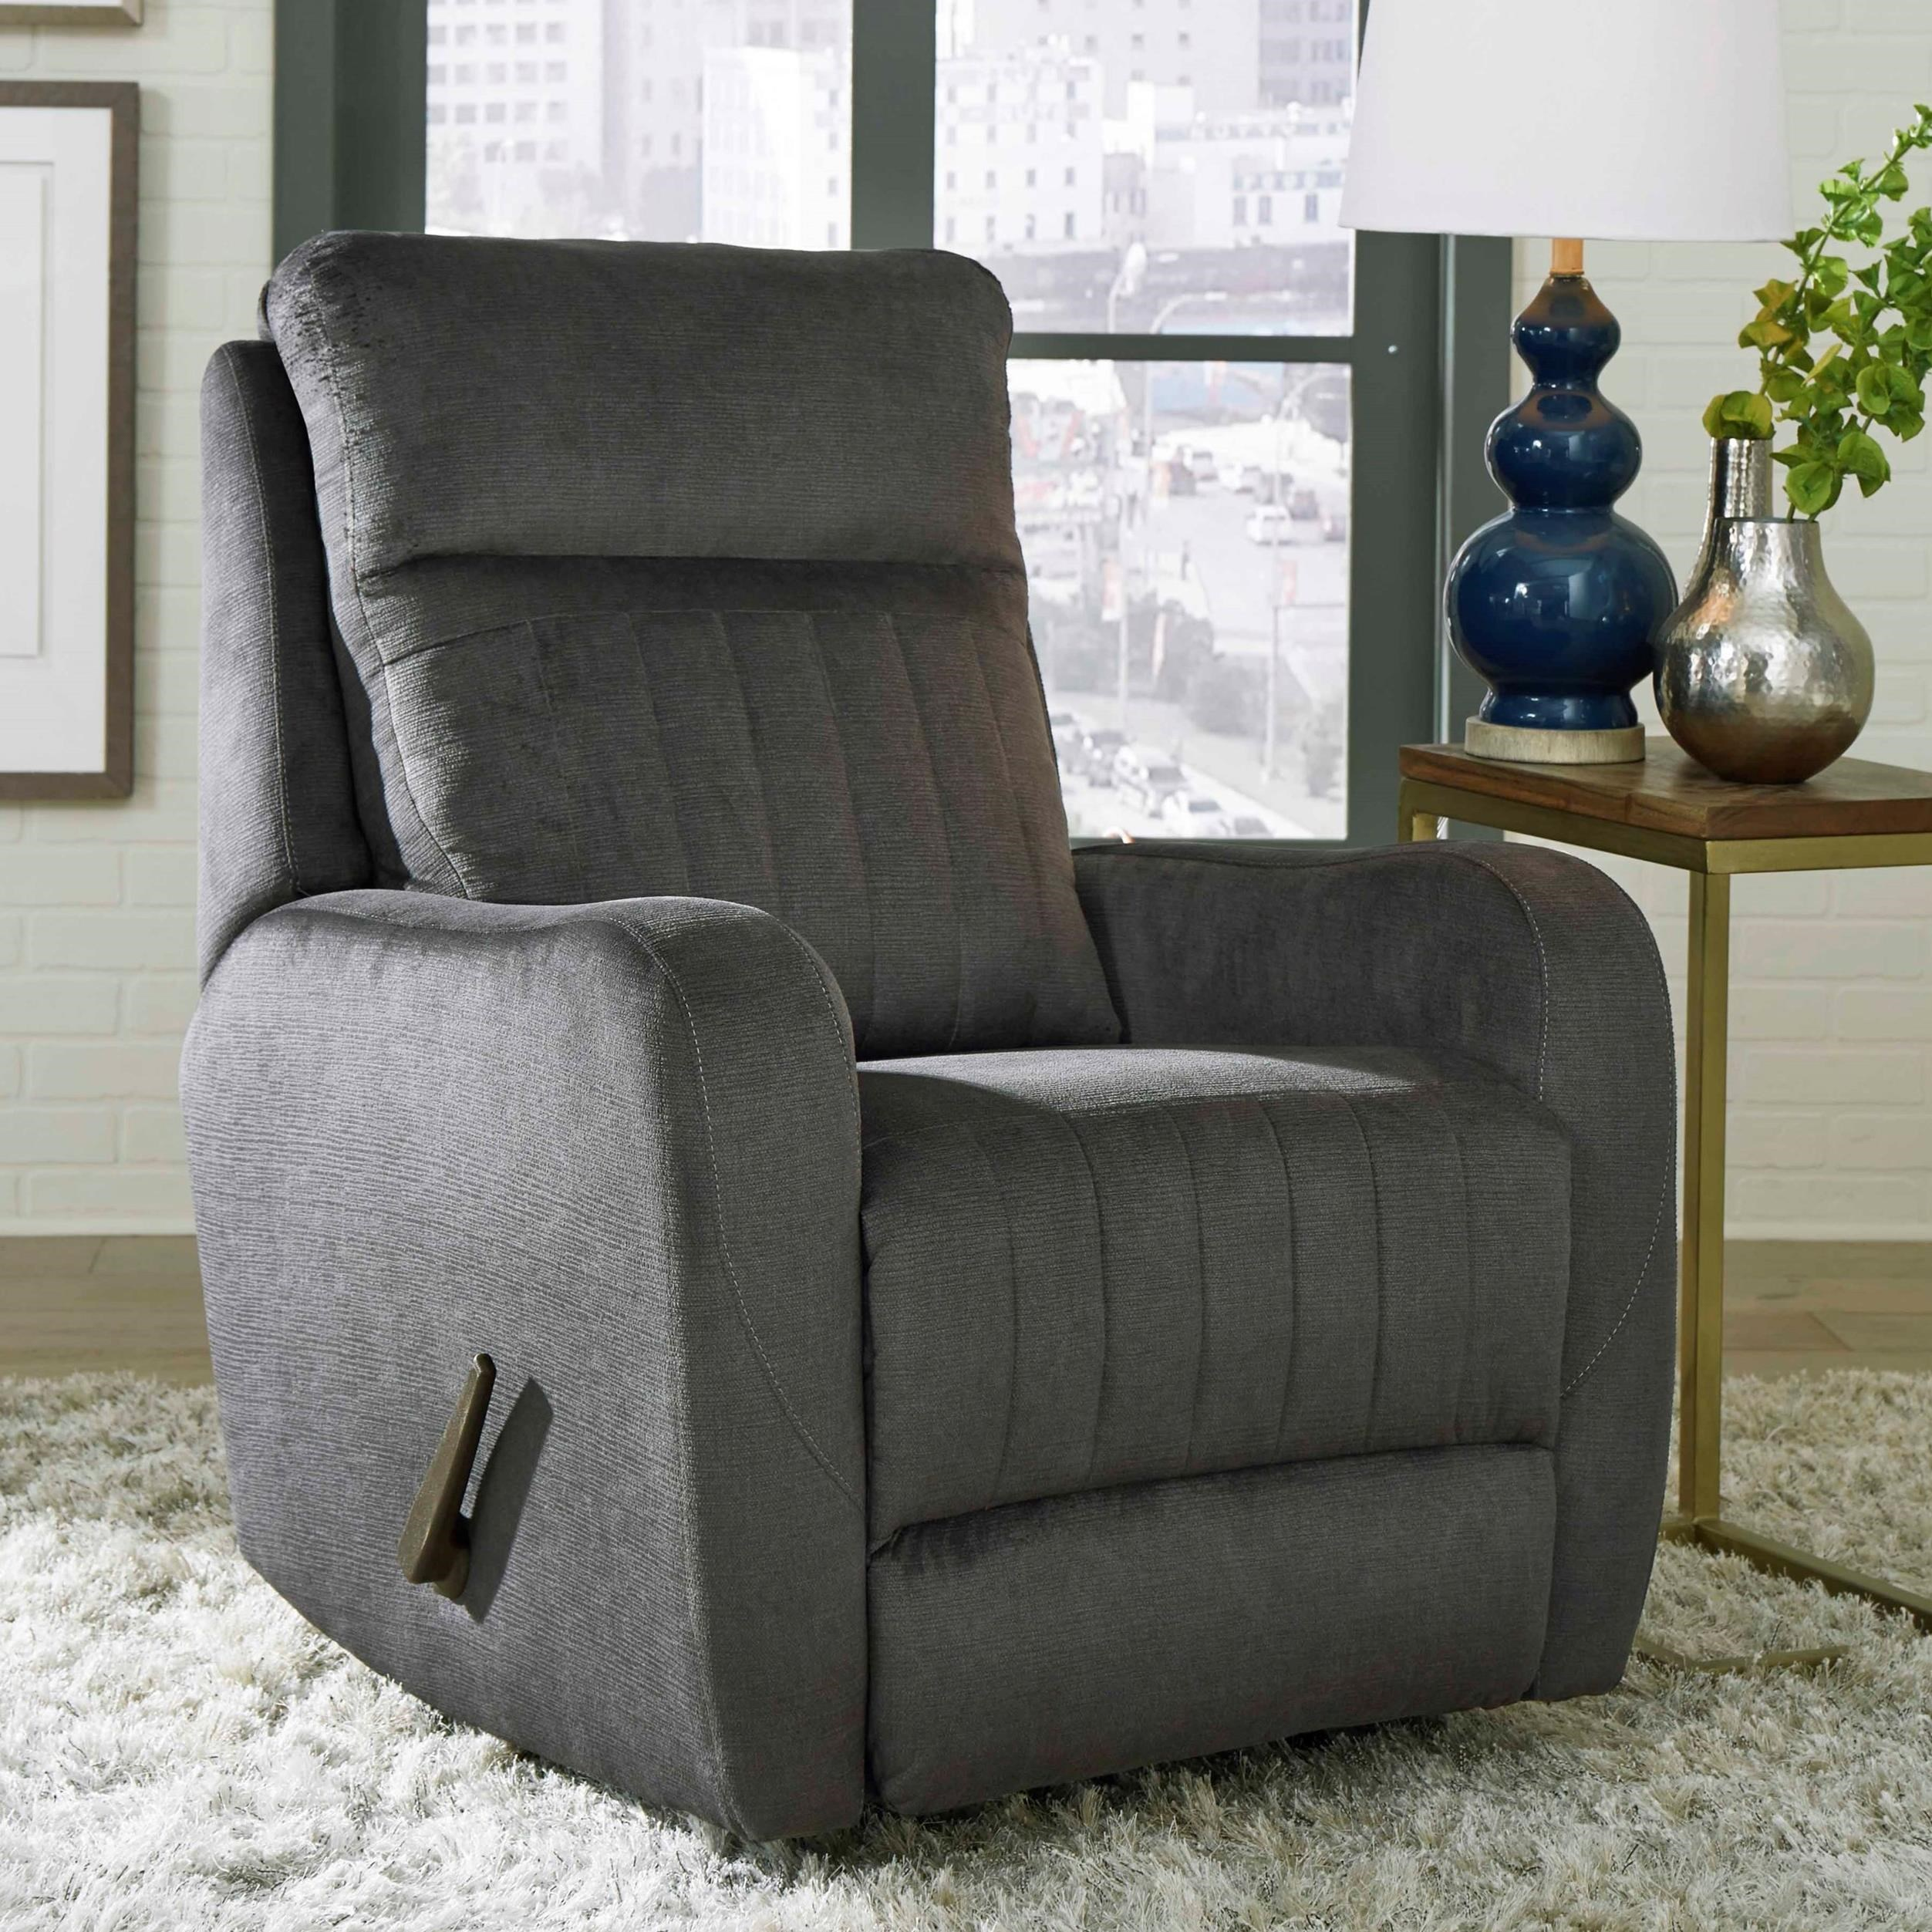 Racetrack Rocker Recliner by Southern Motion at Rooms for Less